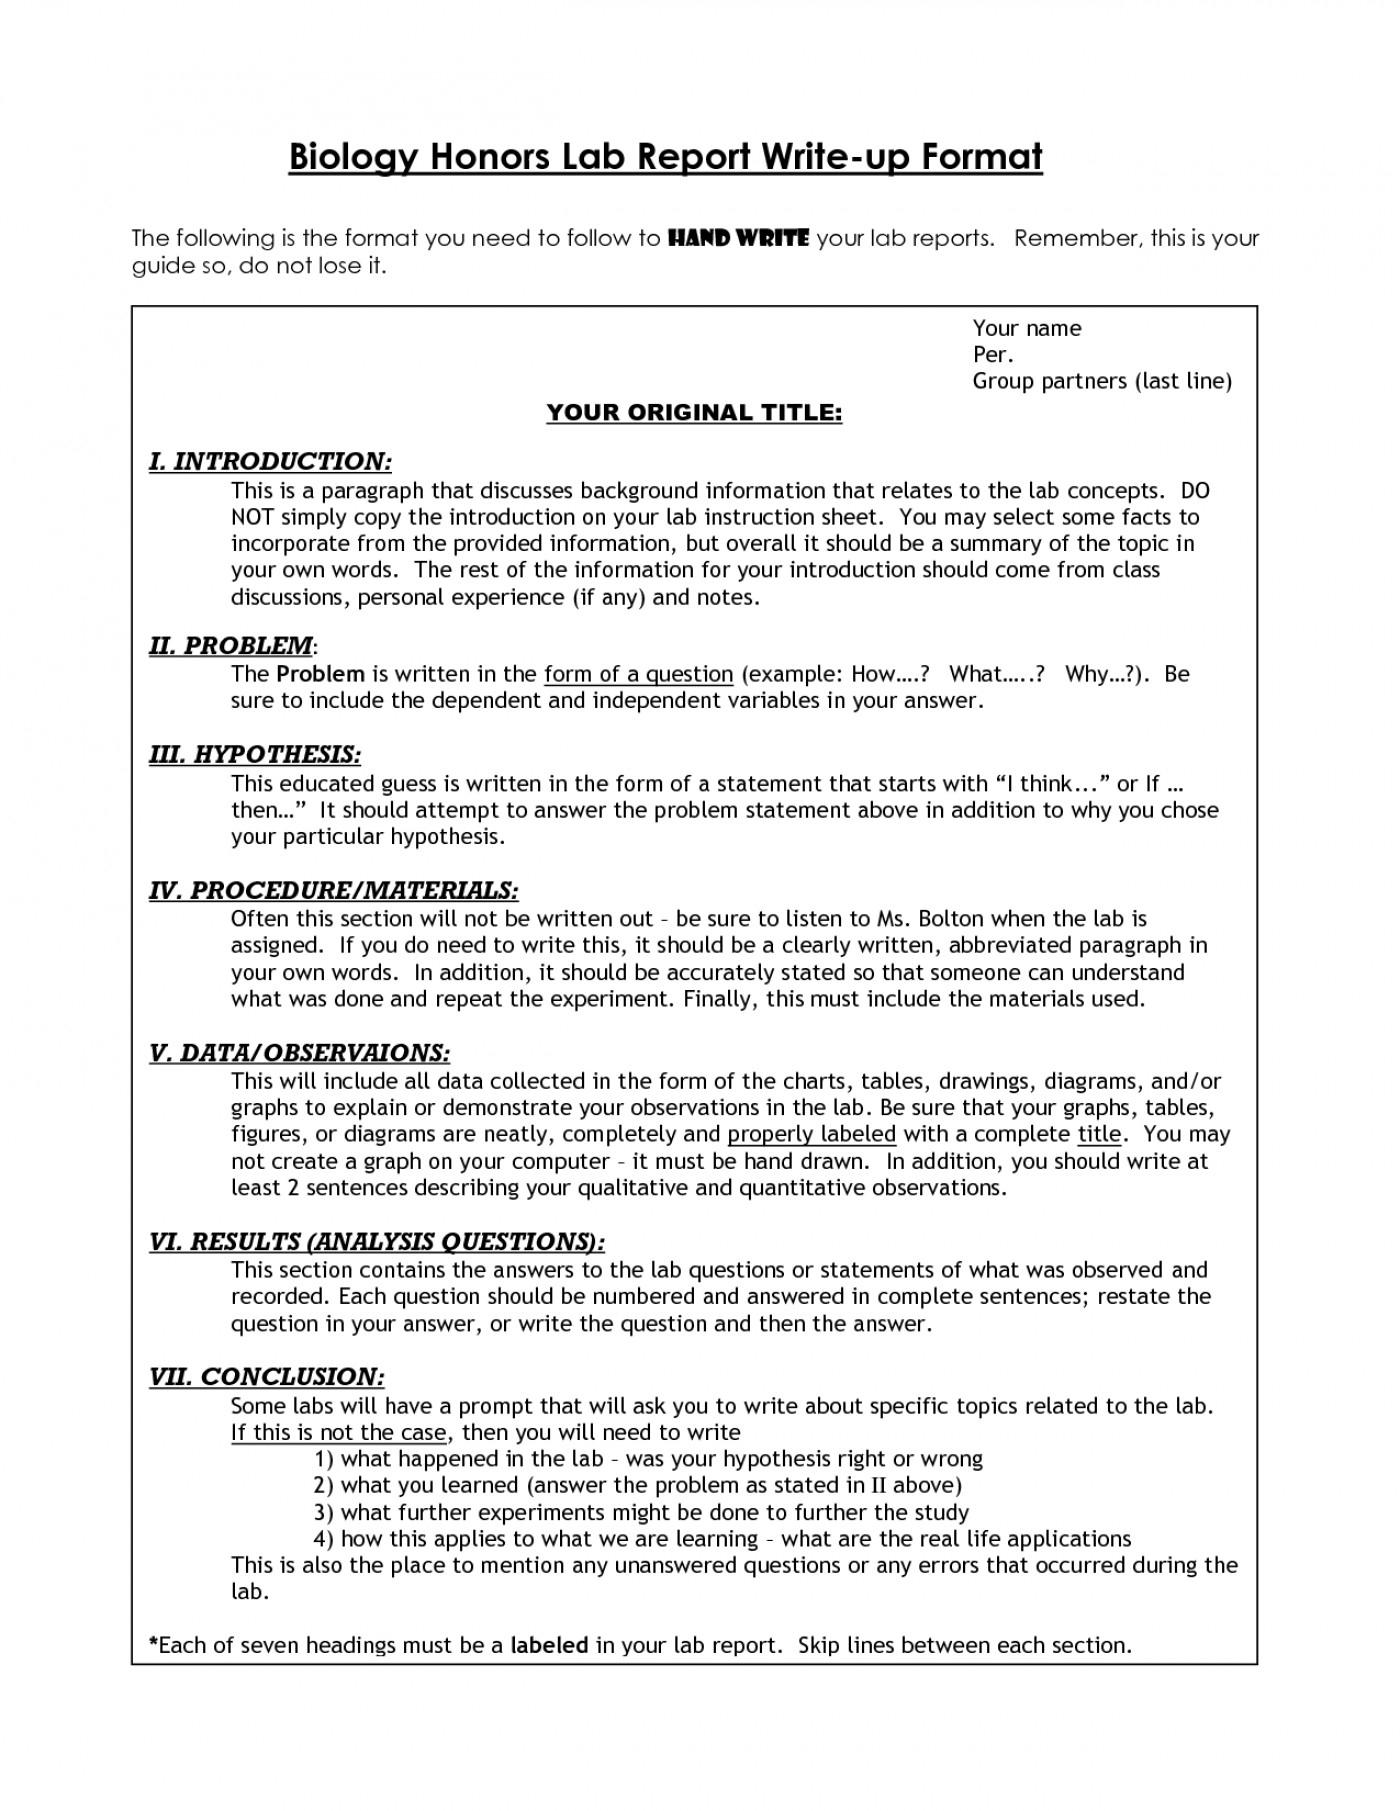 003 Biology Lab Report Template Awesome Ideas Sample Example within Biology Lab Report Template